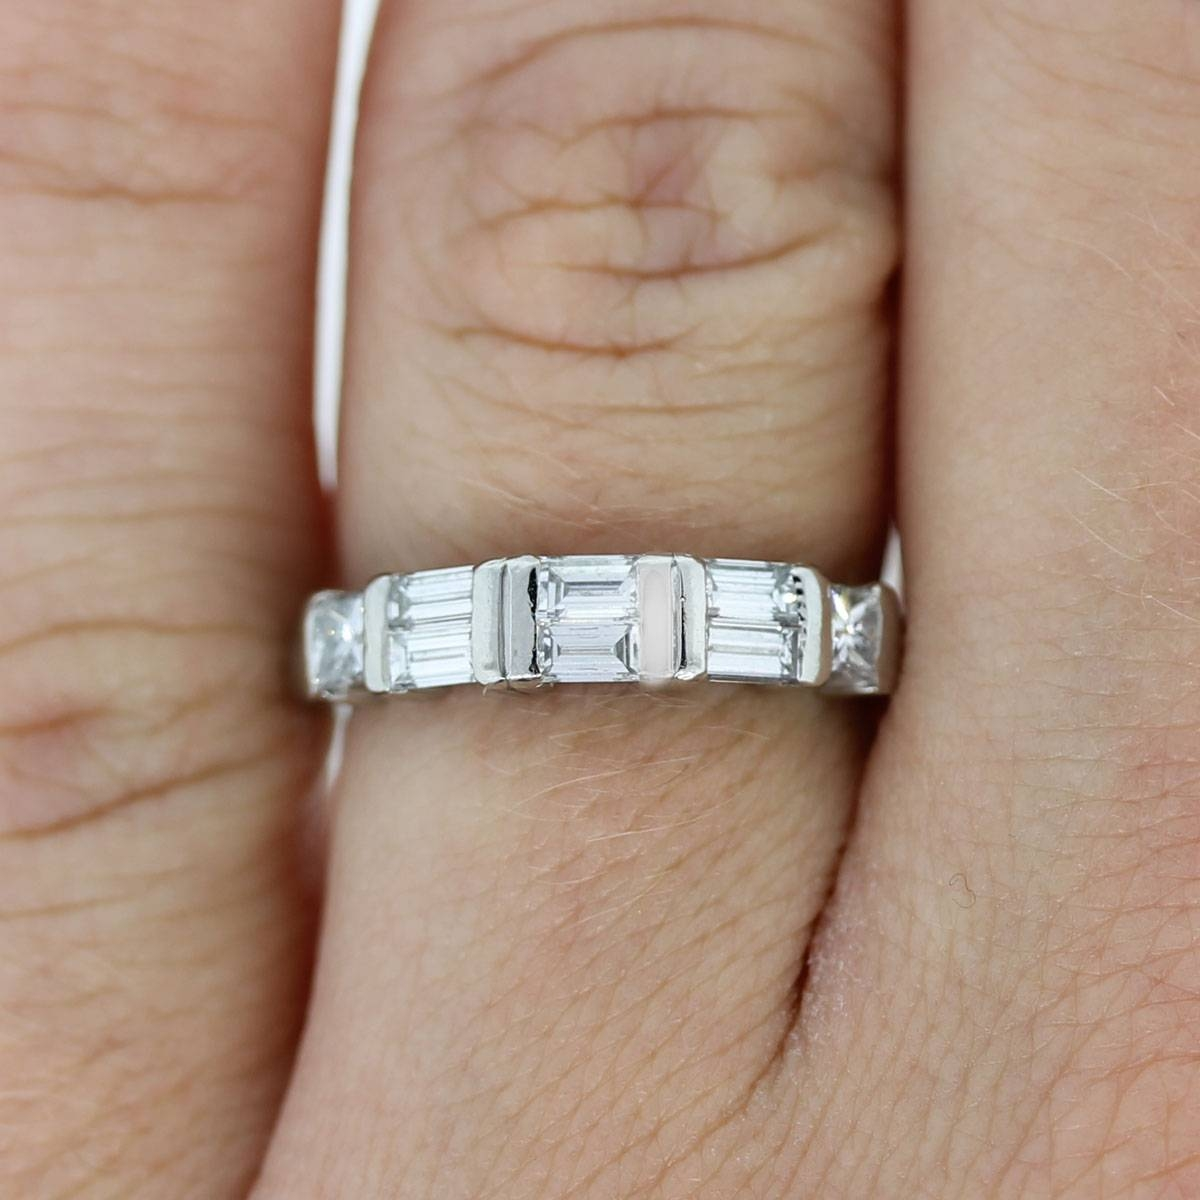 Photo Gallery of Baguette Wedding Bands Viewing 12 of 15 Photos